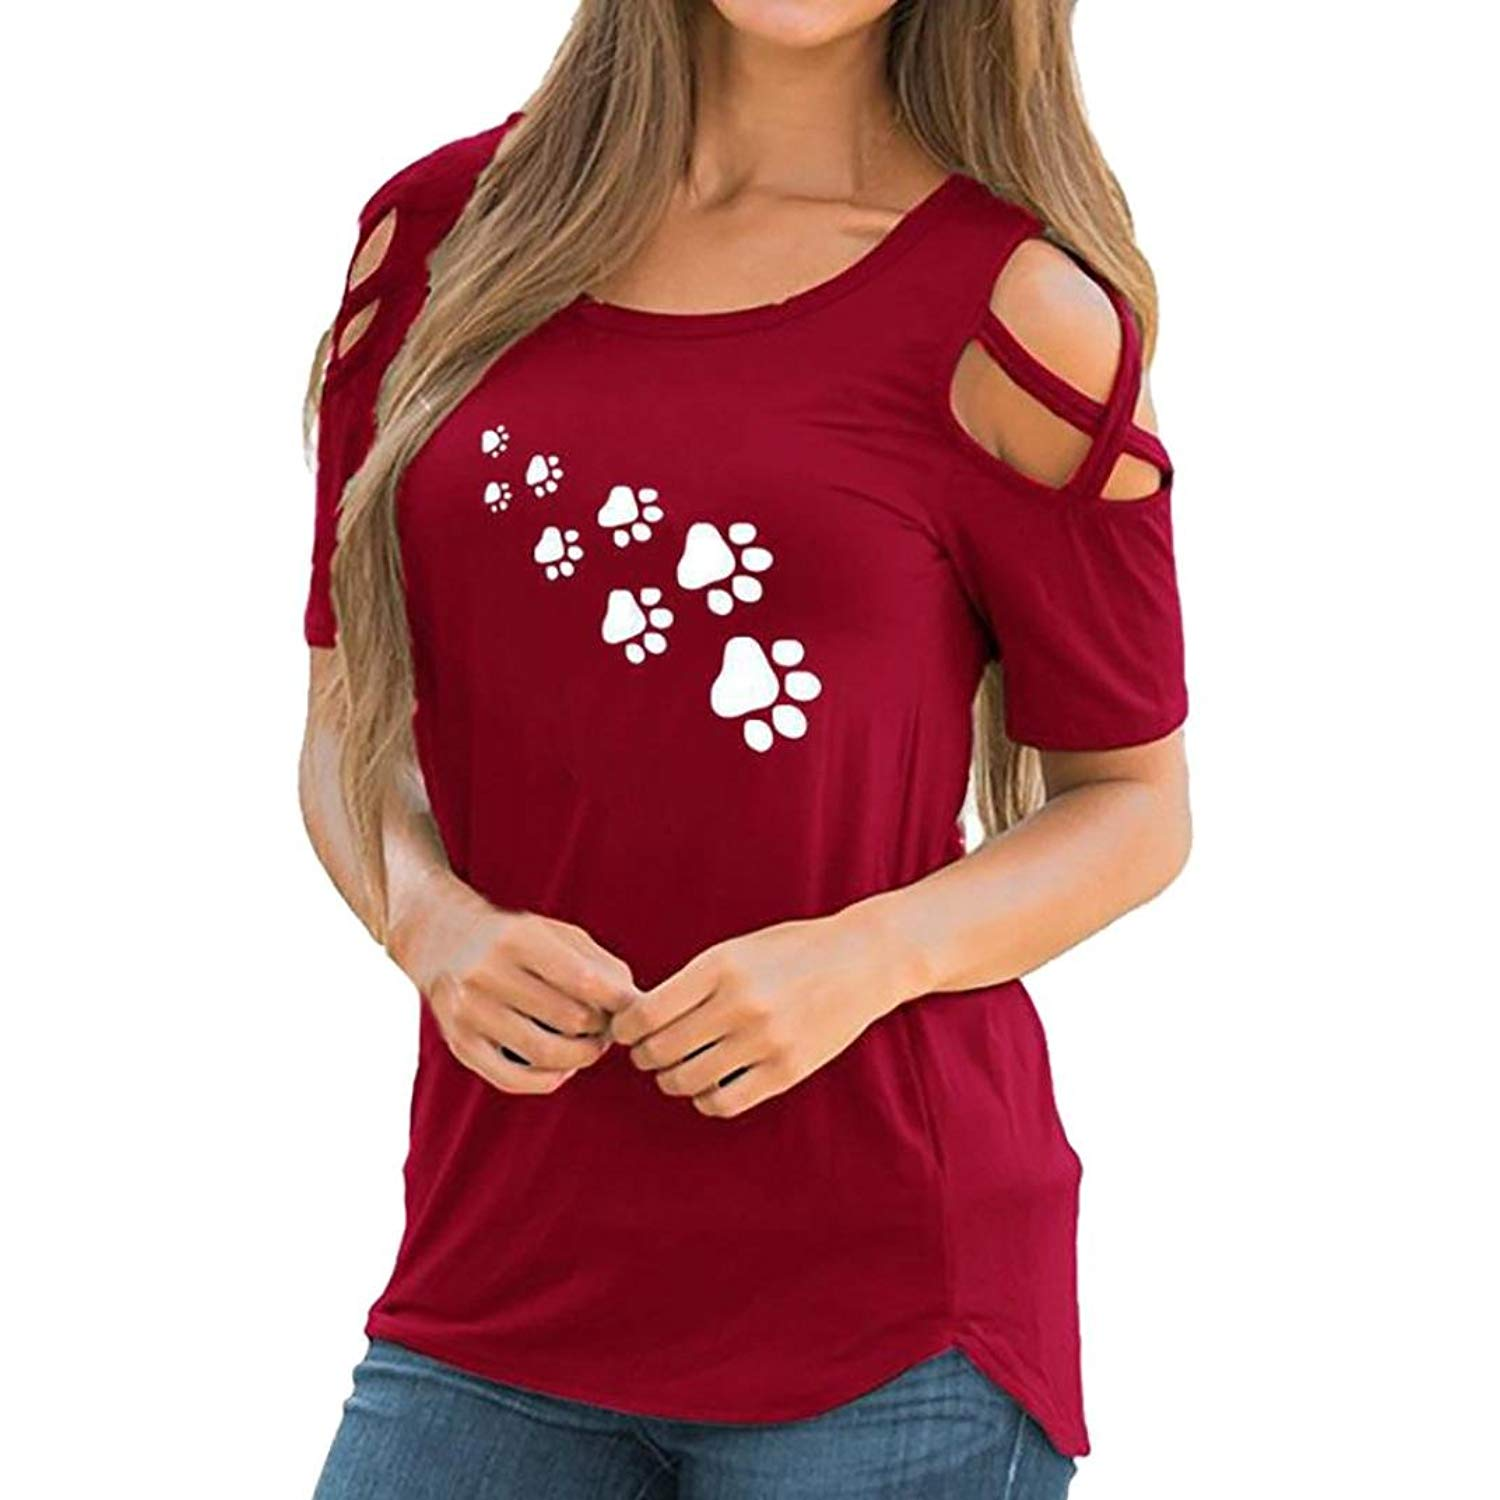 UONQD Woman Women Summer Short Sleeve Print Strappy Cold Shoulder T-Shirt Tops Blouses